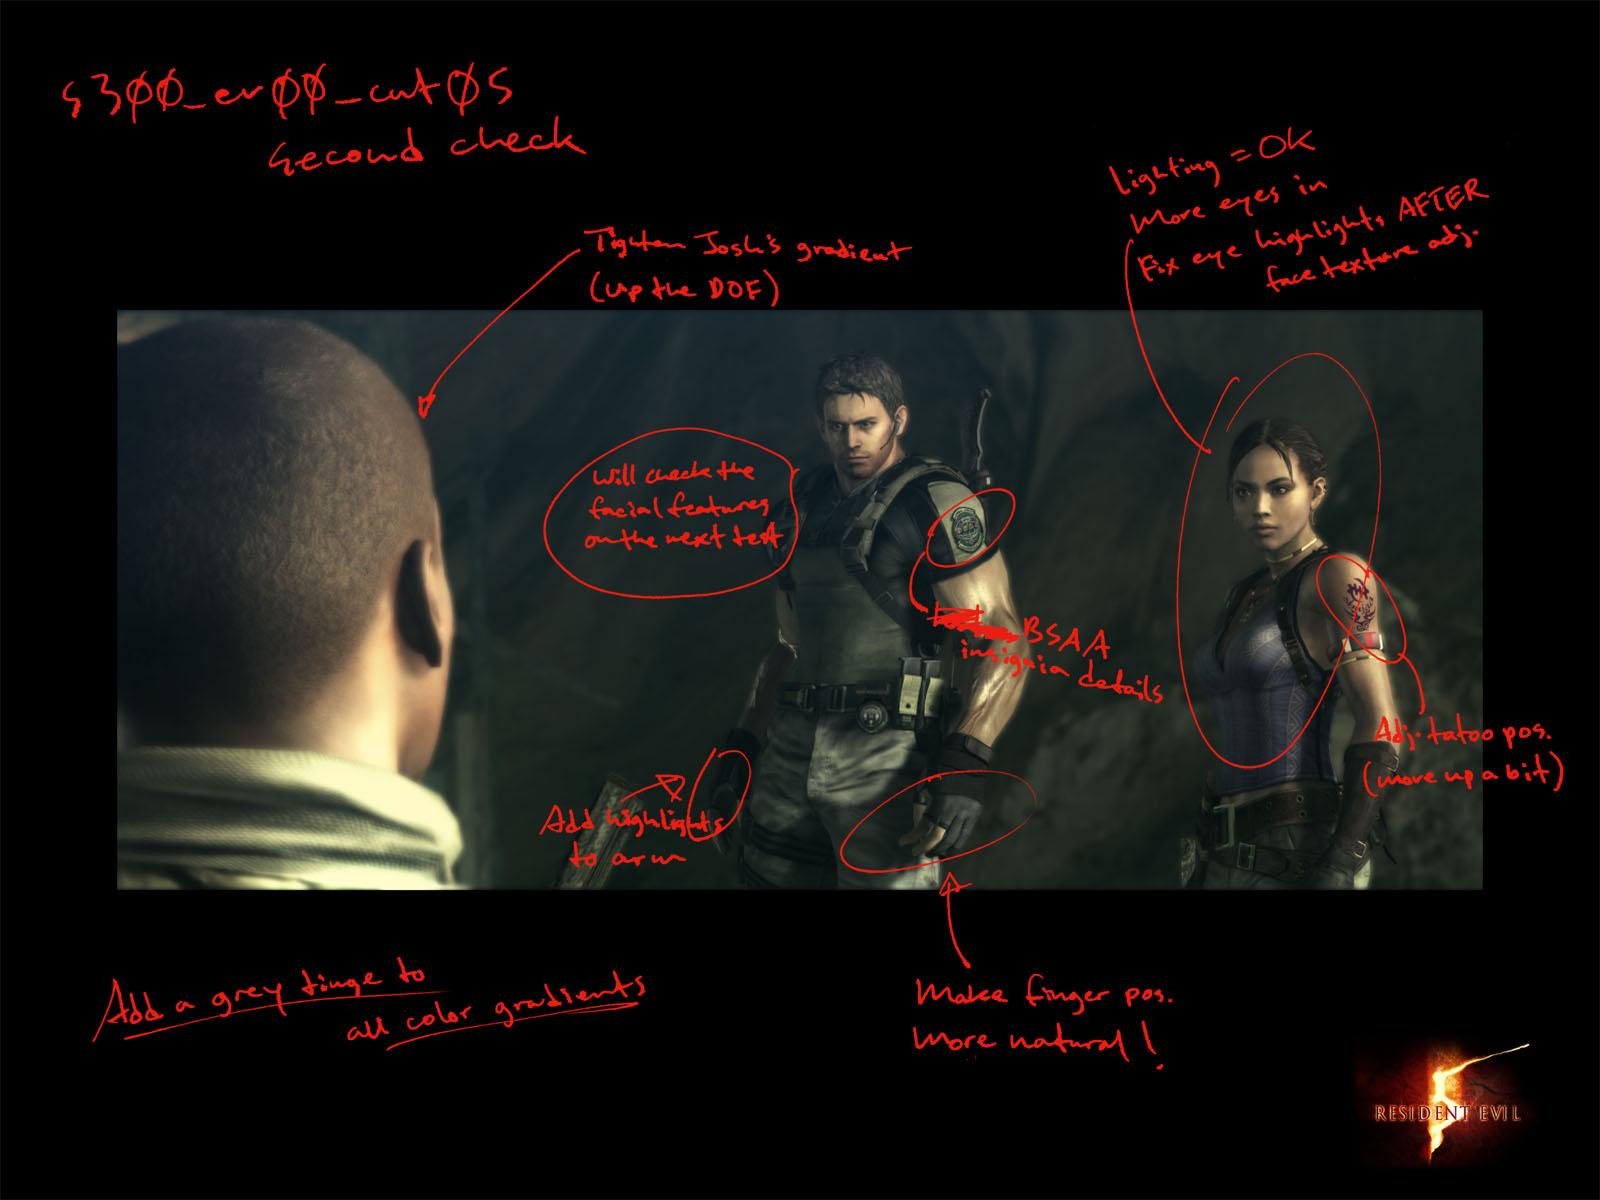 Resident evil 5 nude cheat hardcore comic